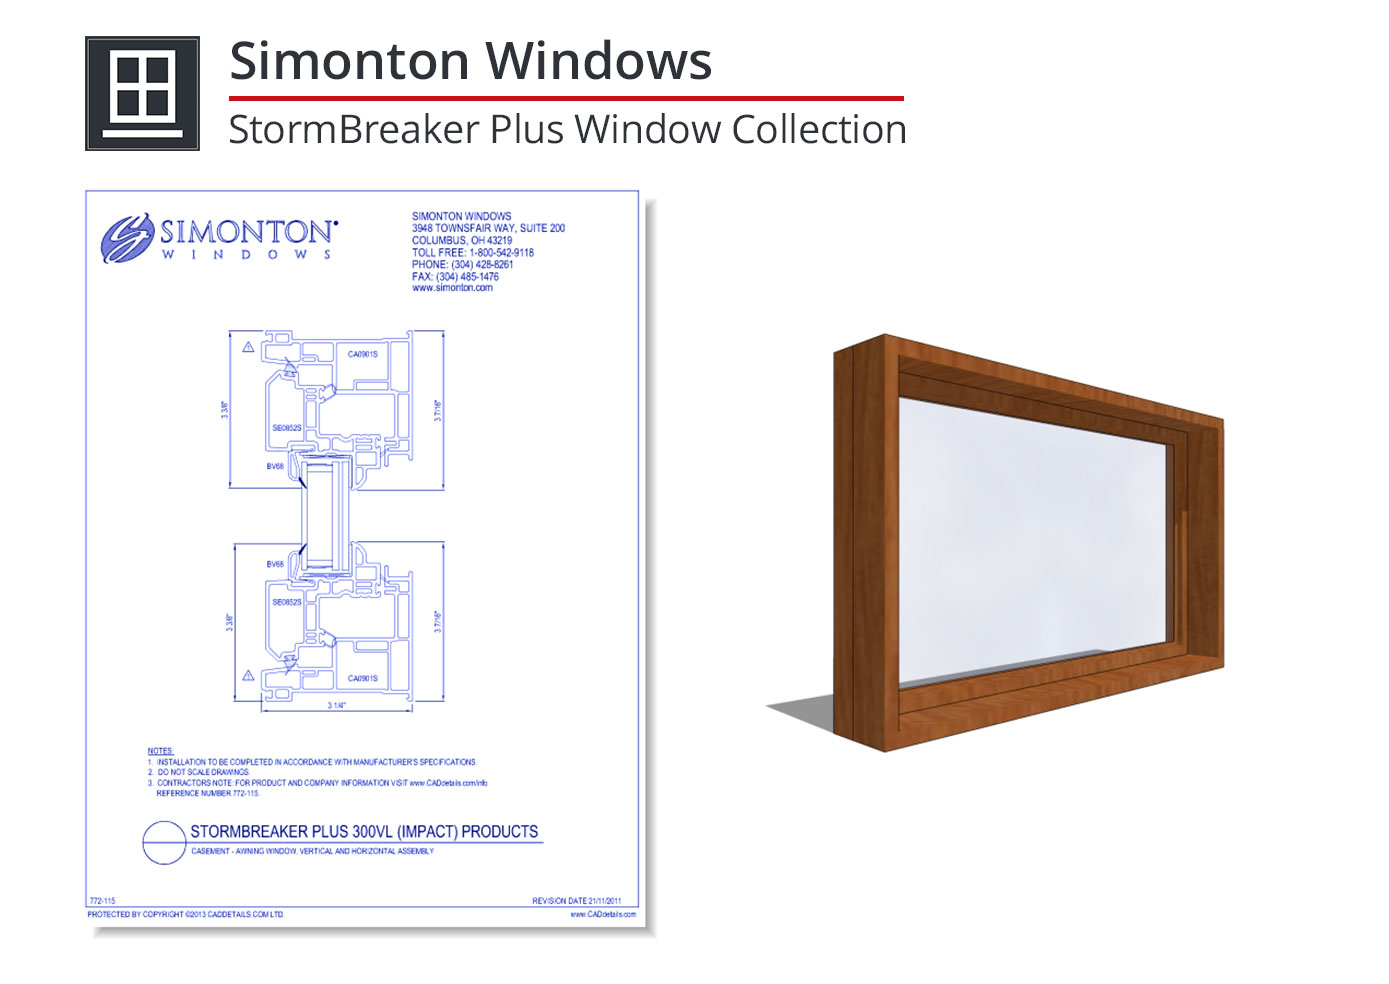 772-115 StormBreaker Plus Window Collection